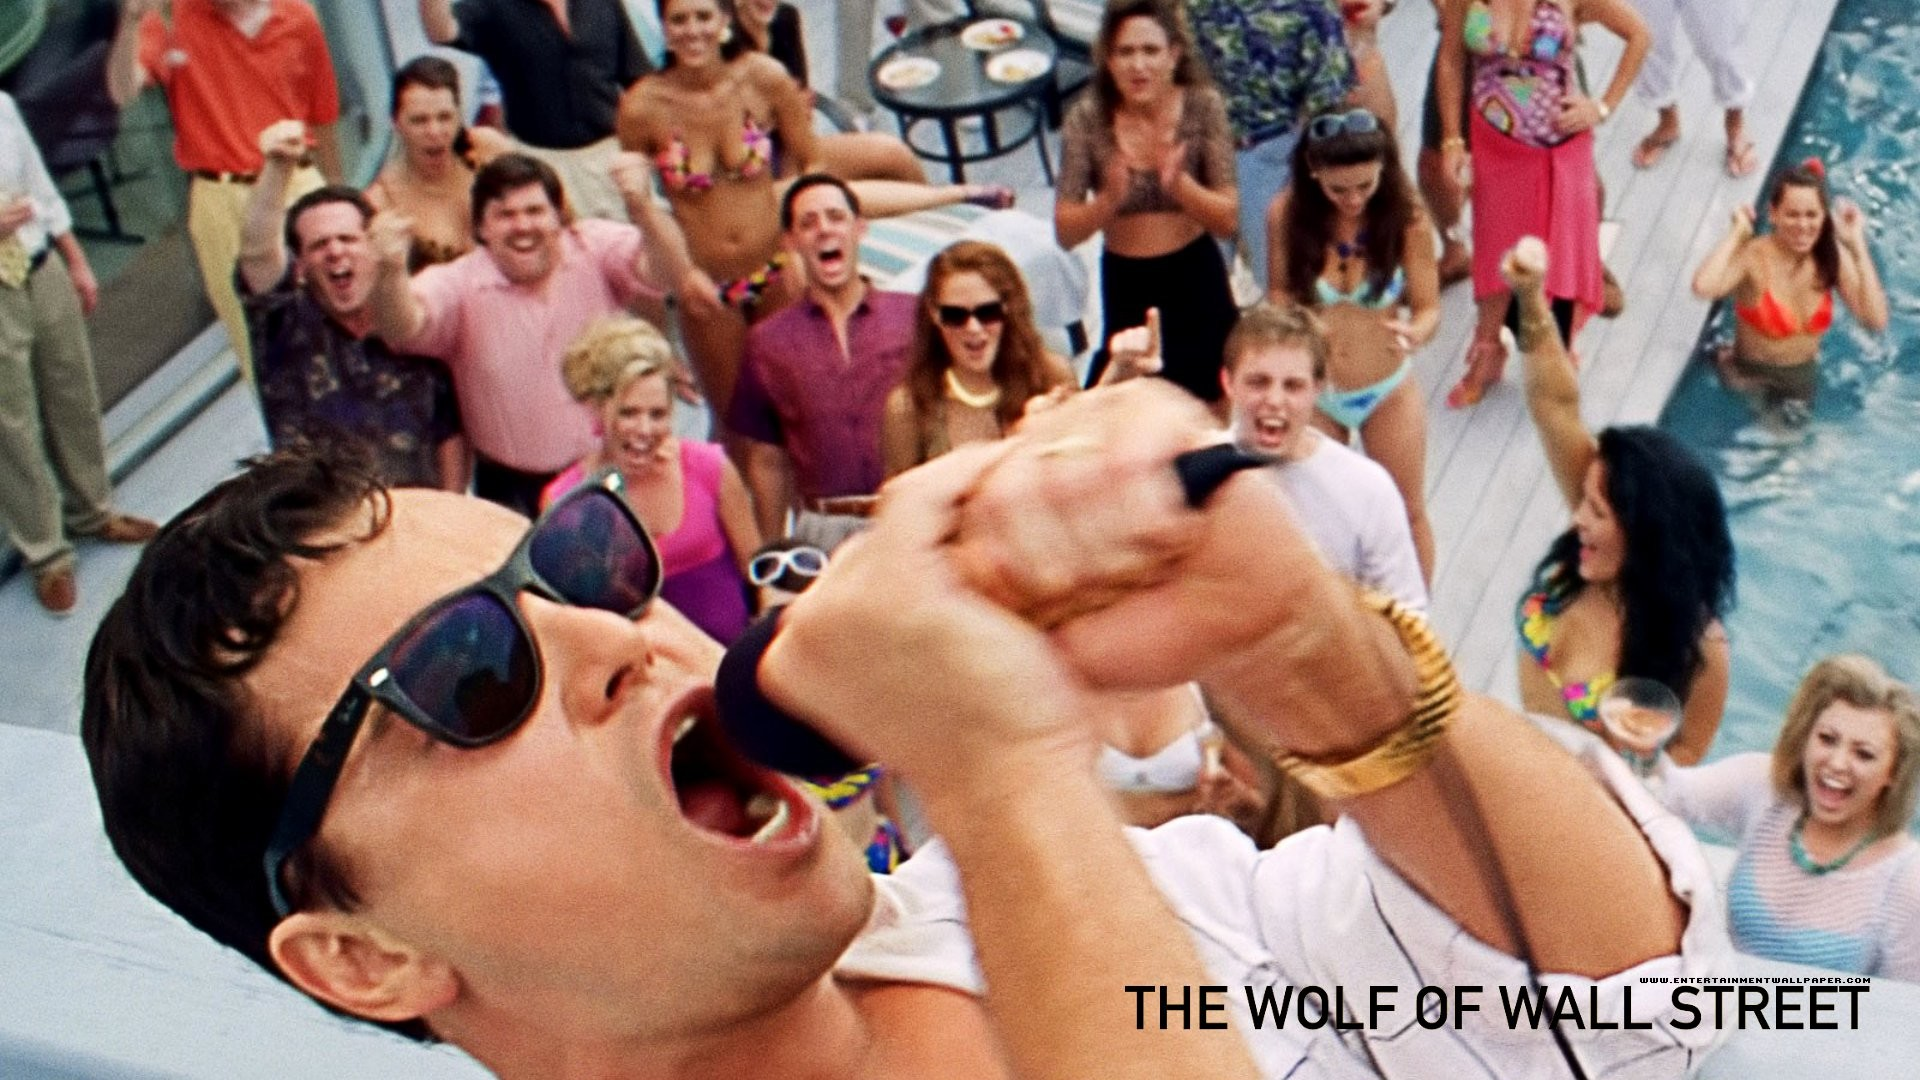 1920x1080 ... wallpapers The Wolf Of Wall Street Background